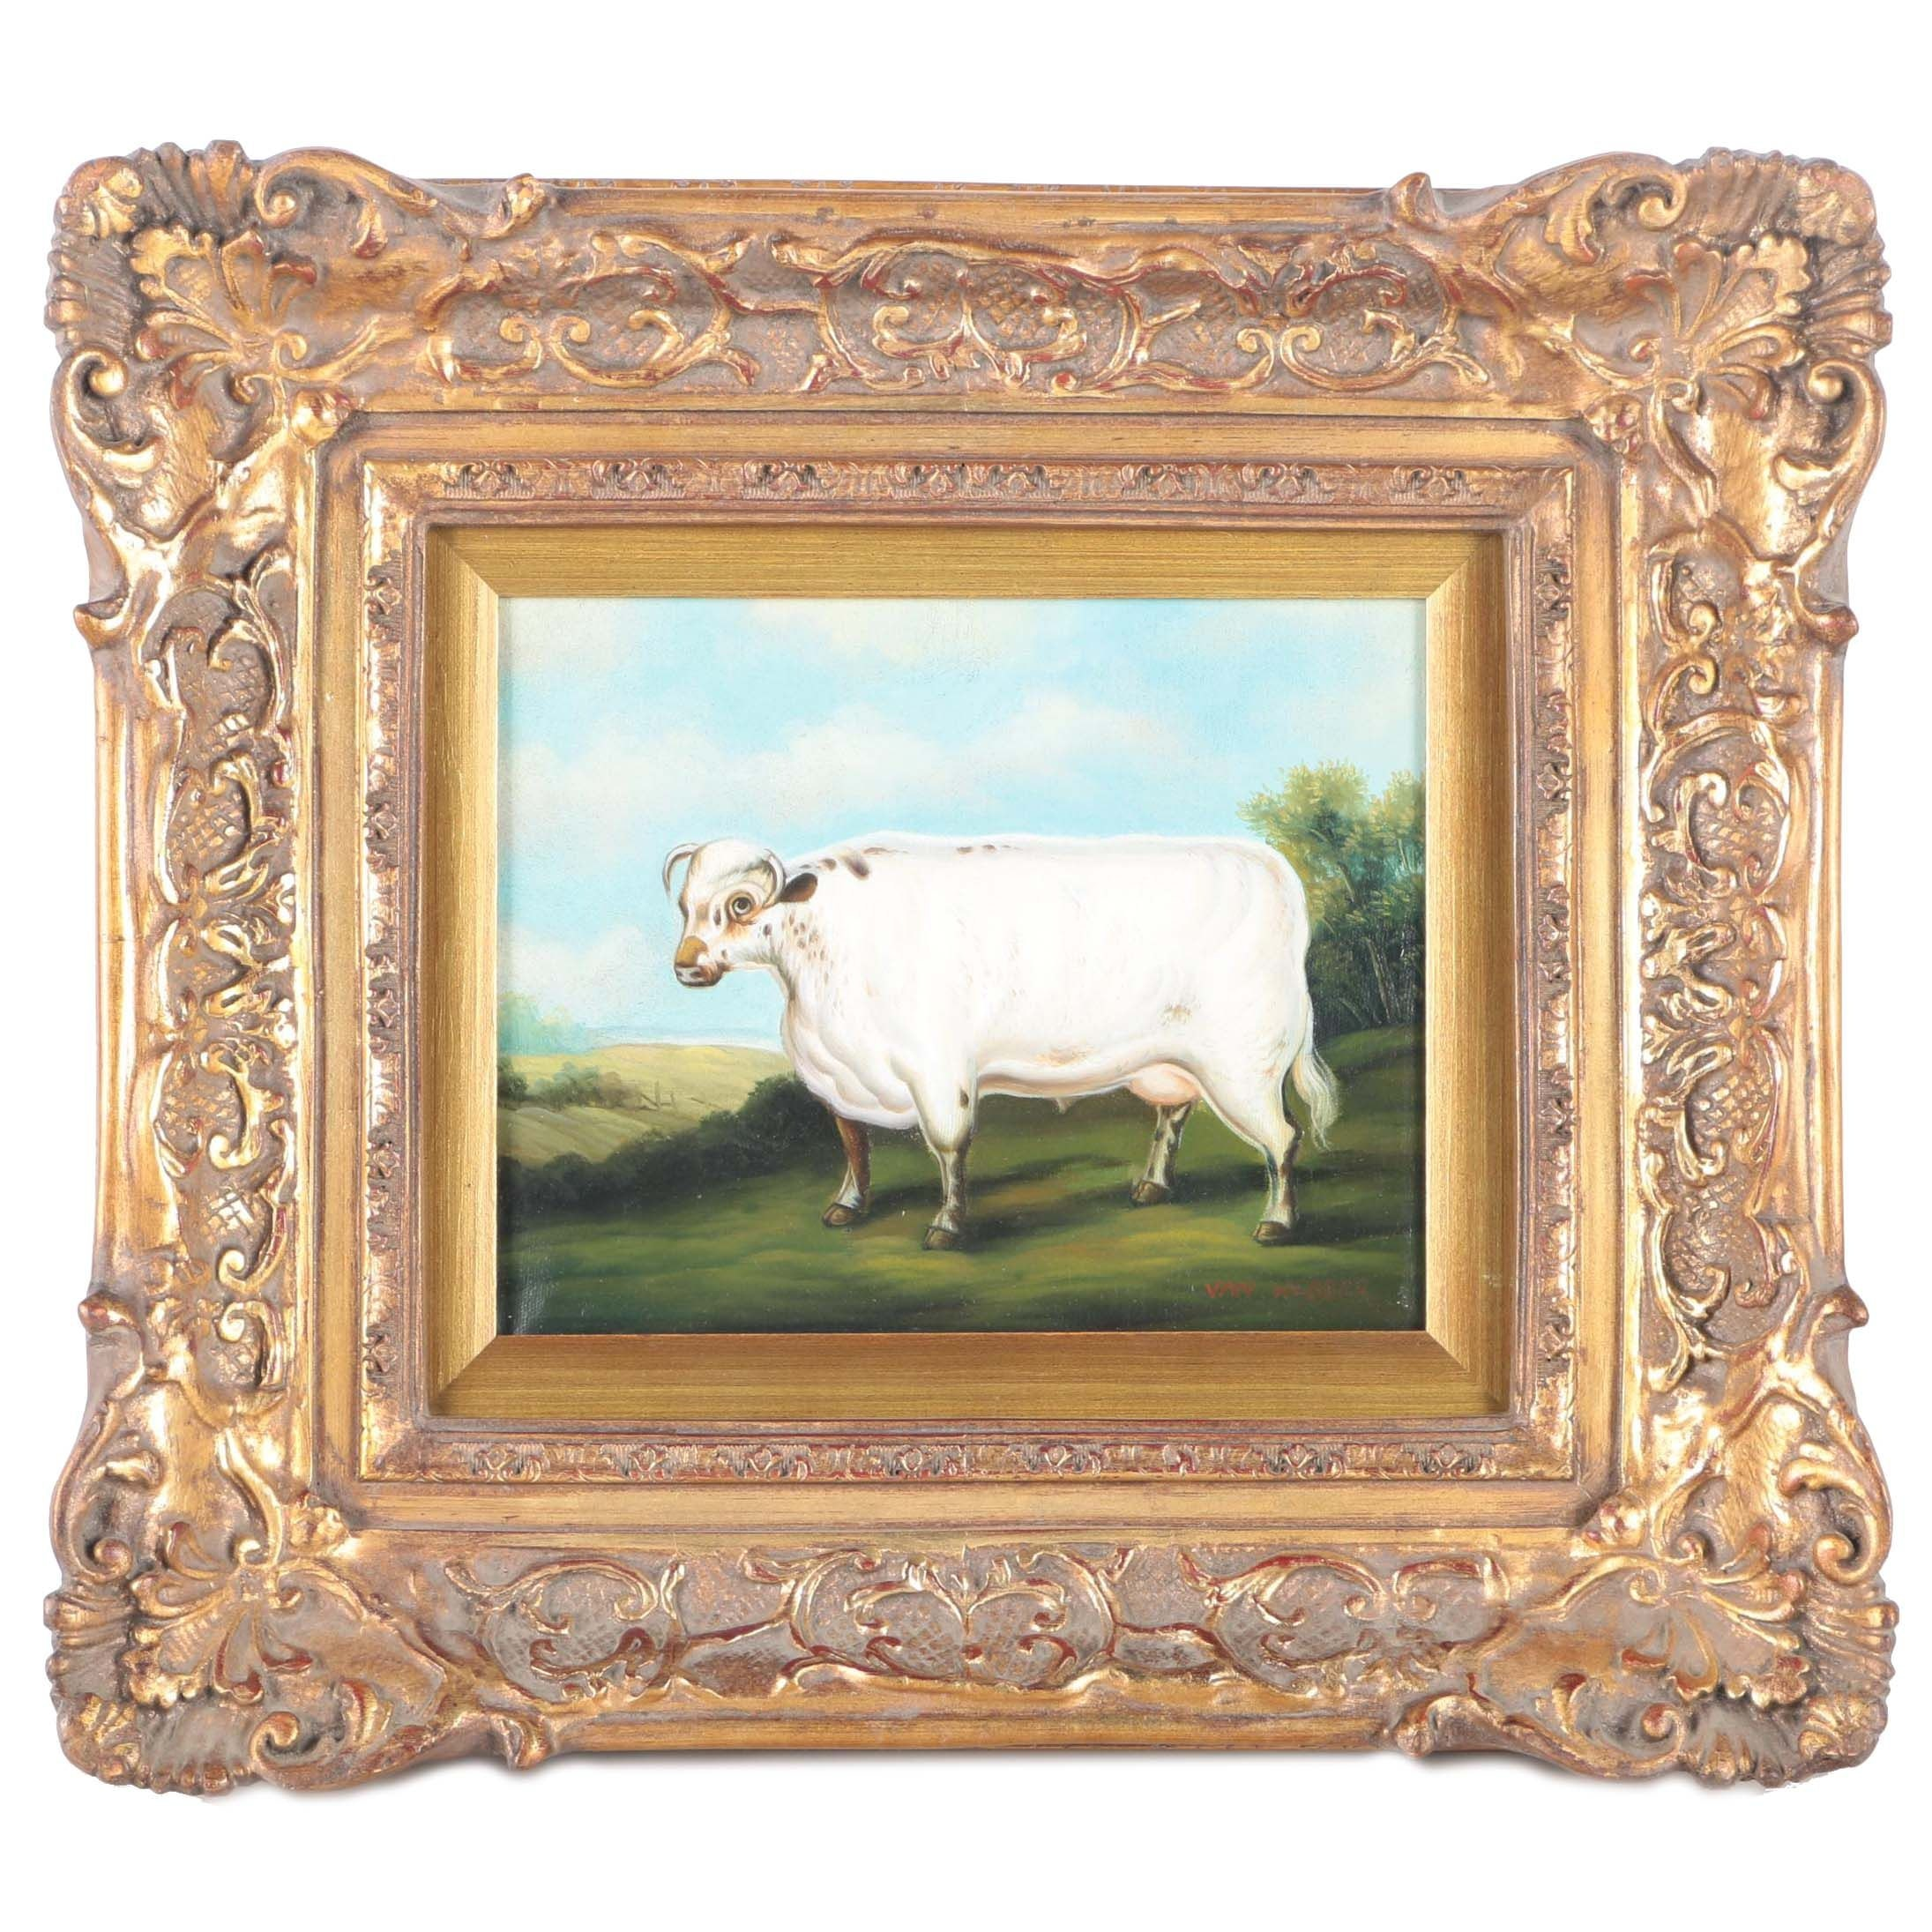 Van Webber Original Oil Painting on Canvas of a Cow